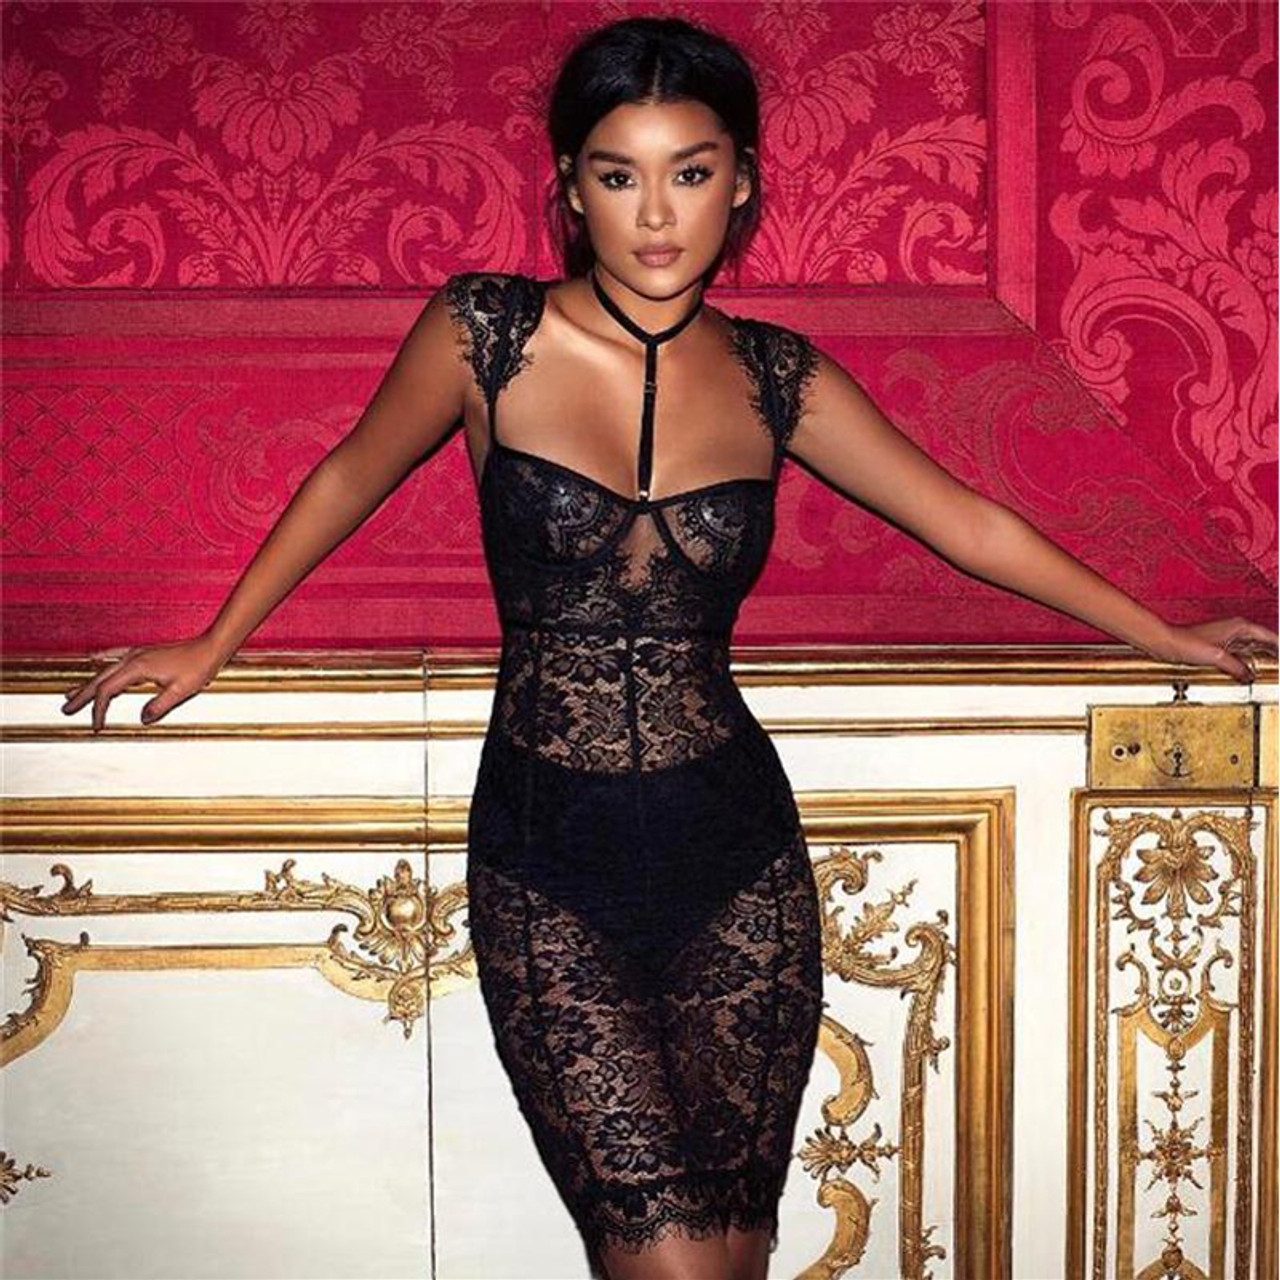 fed2704aa34 SEXY DIRTY PARTY LACE DRESS - wantmychic